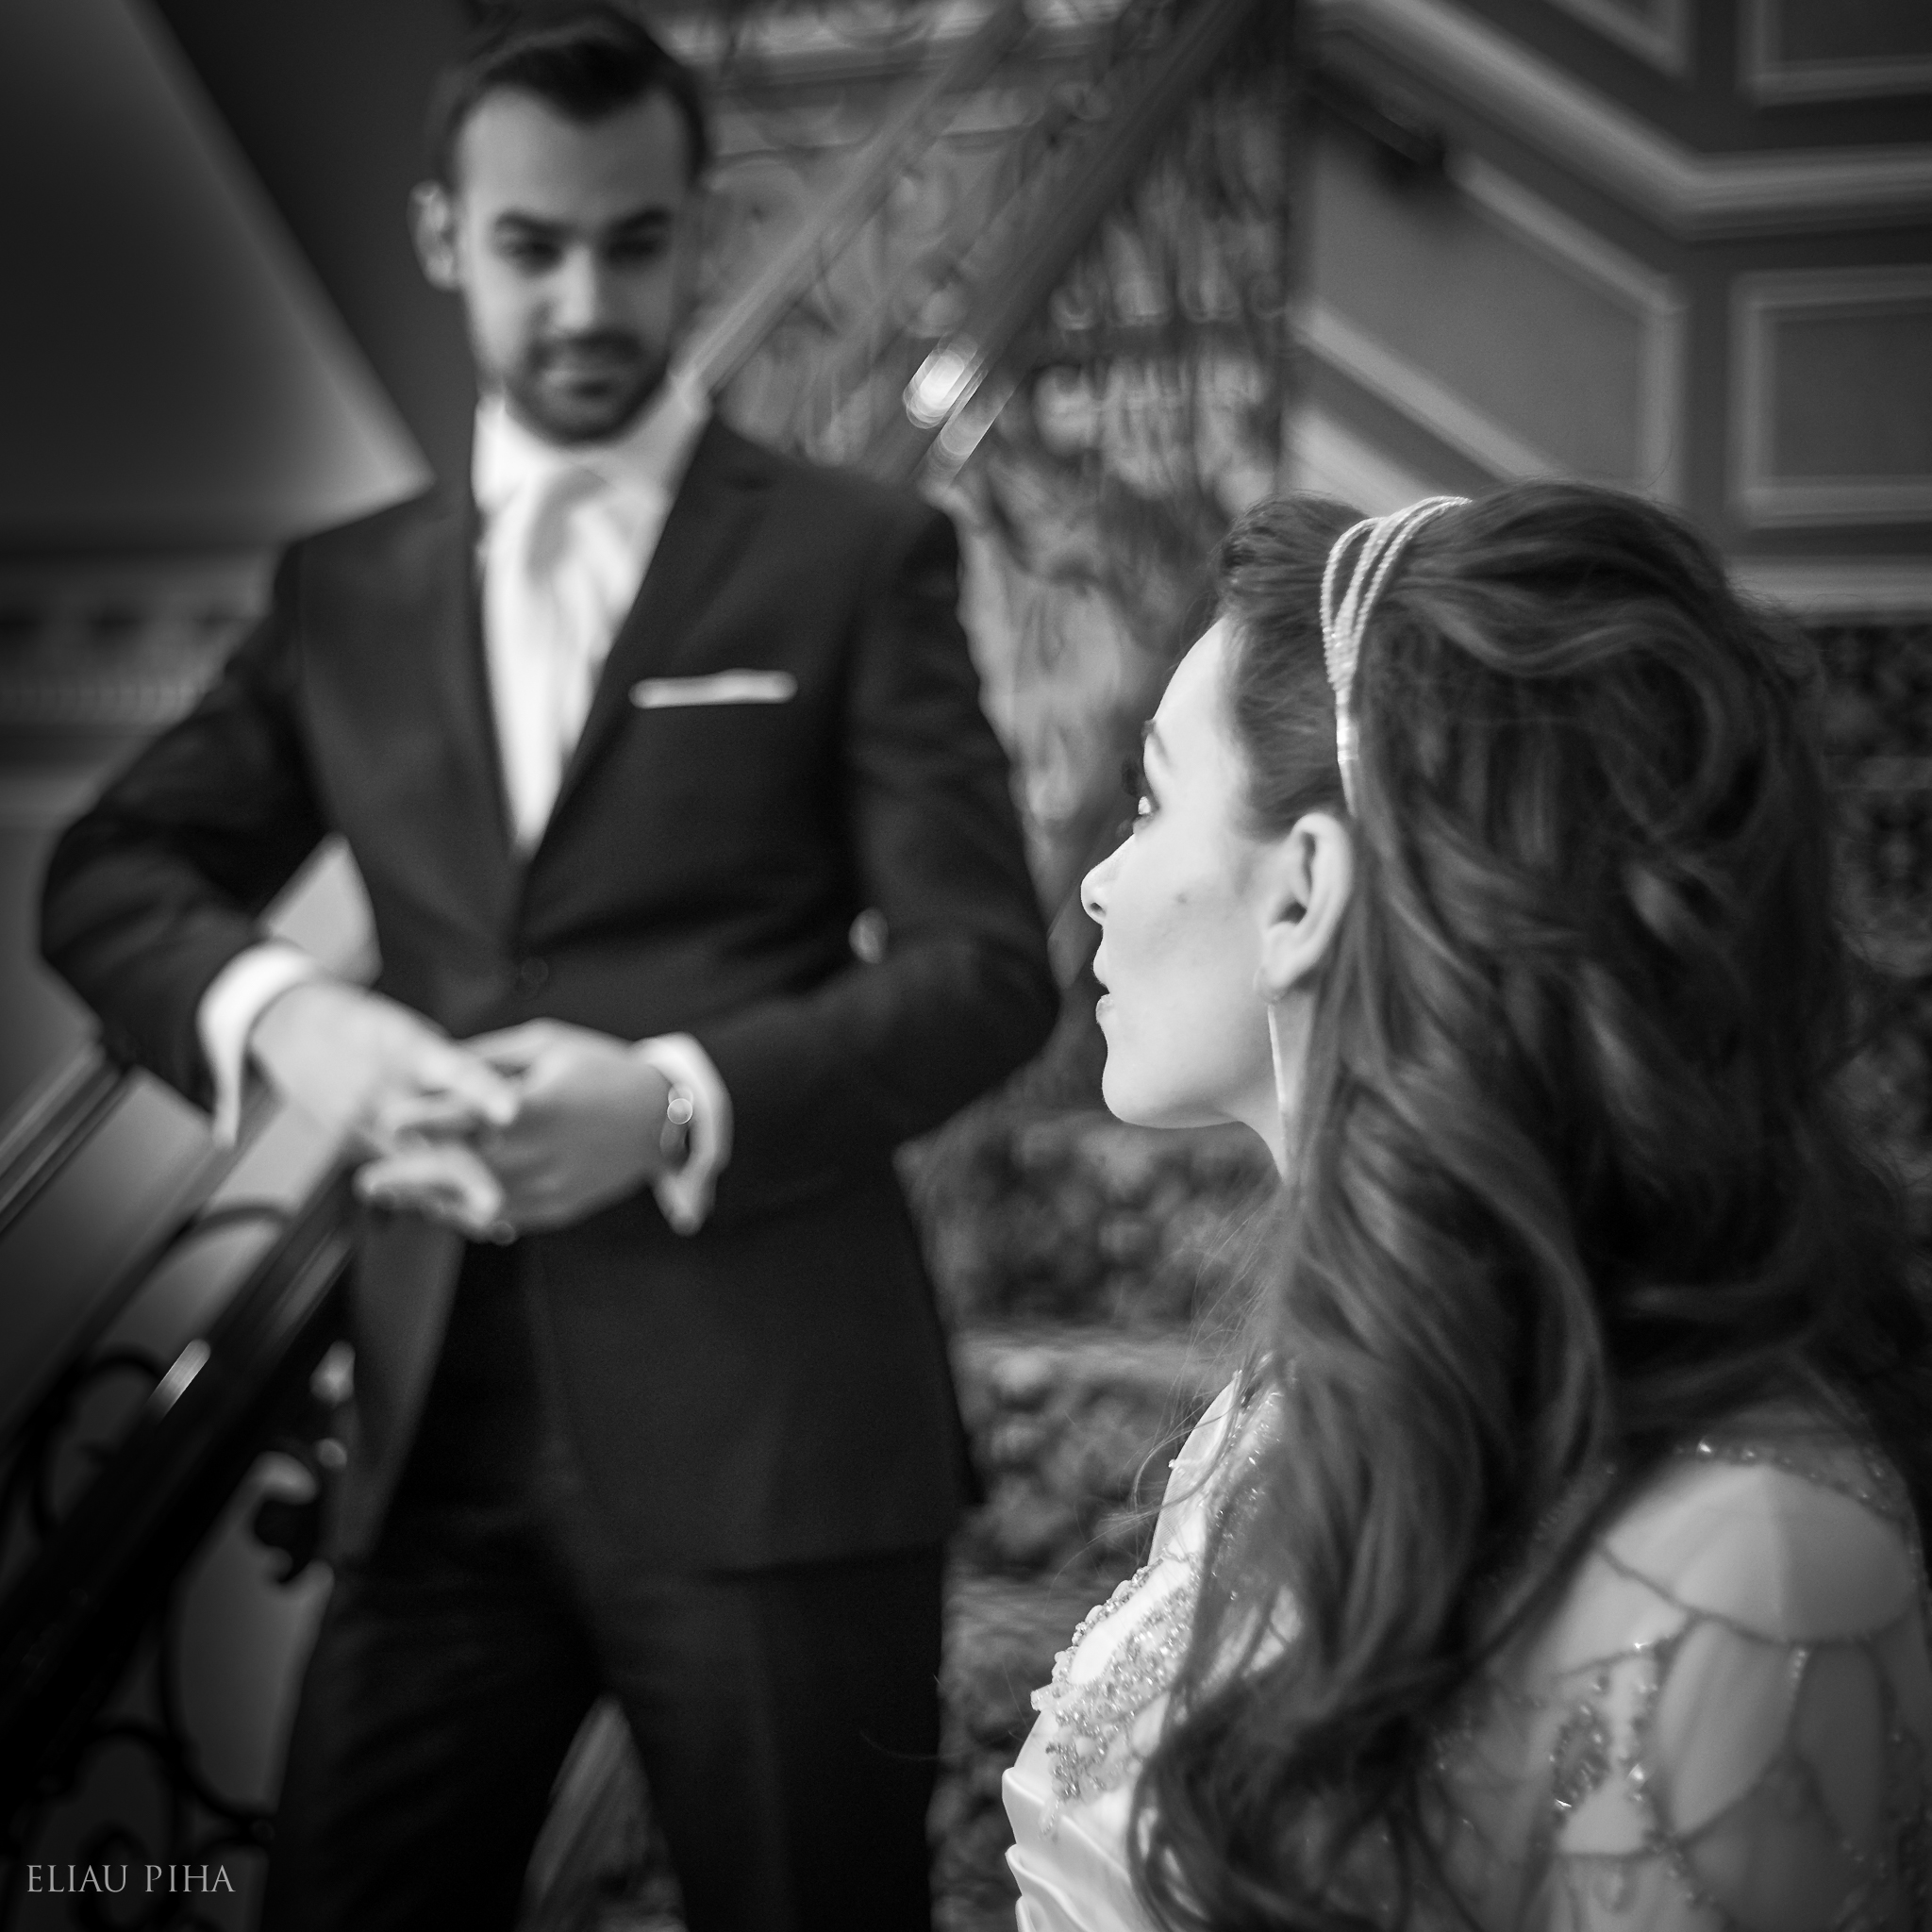 Wedding Sara and Ayal | Eliau Piha studio photography, new york, events, people-53.jpg